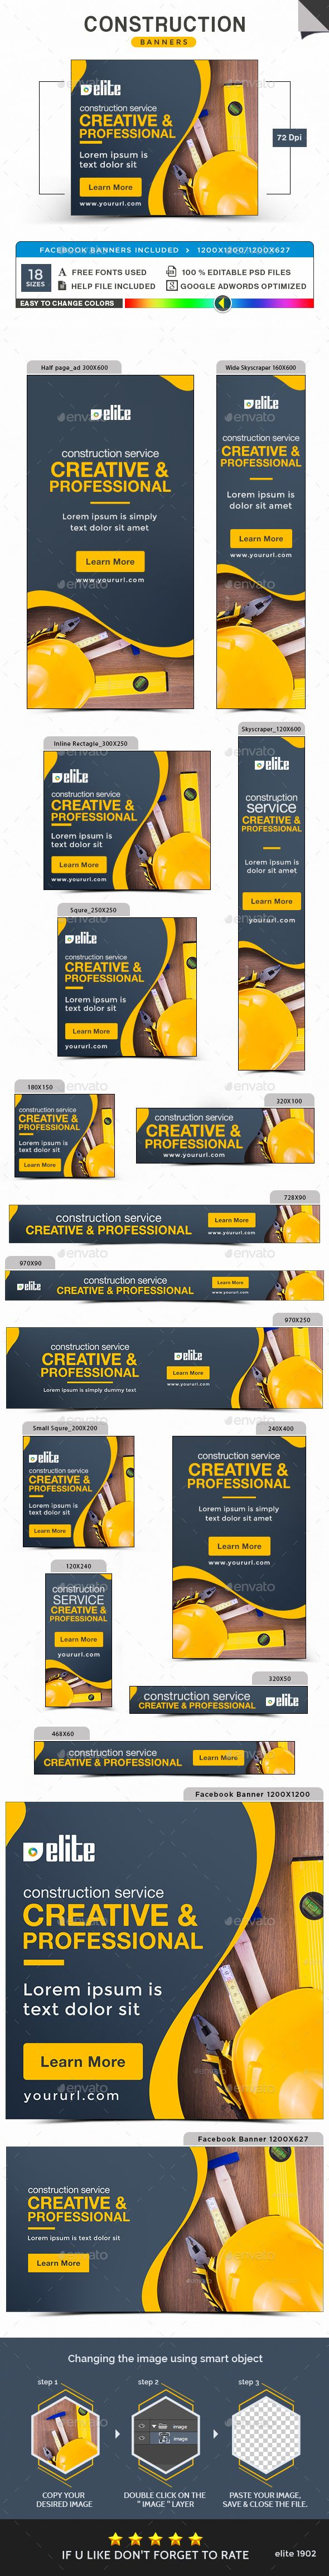 Construction Banners — Photoshop PSD #google adwords #gif banner • Available here → https://graphicriver.net/item/construction-banners/18416734?ref=pxcr